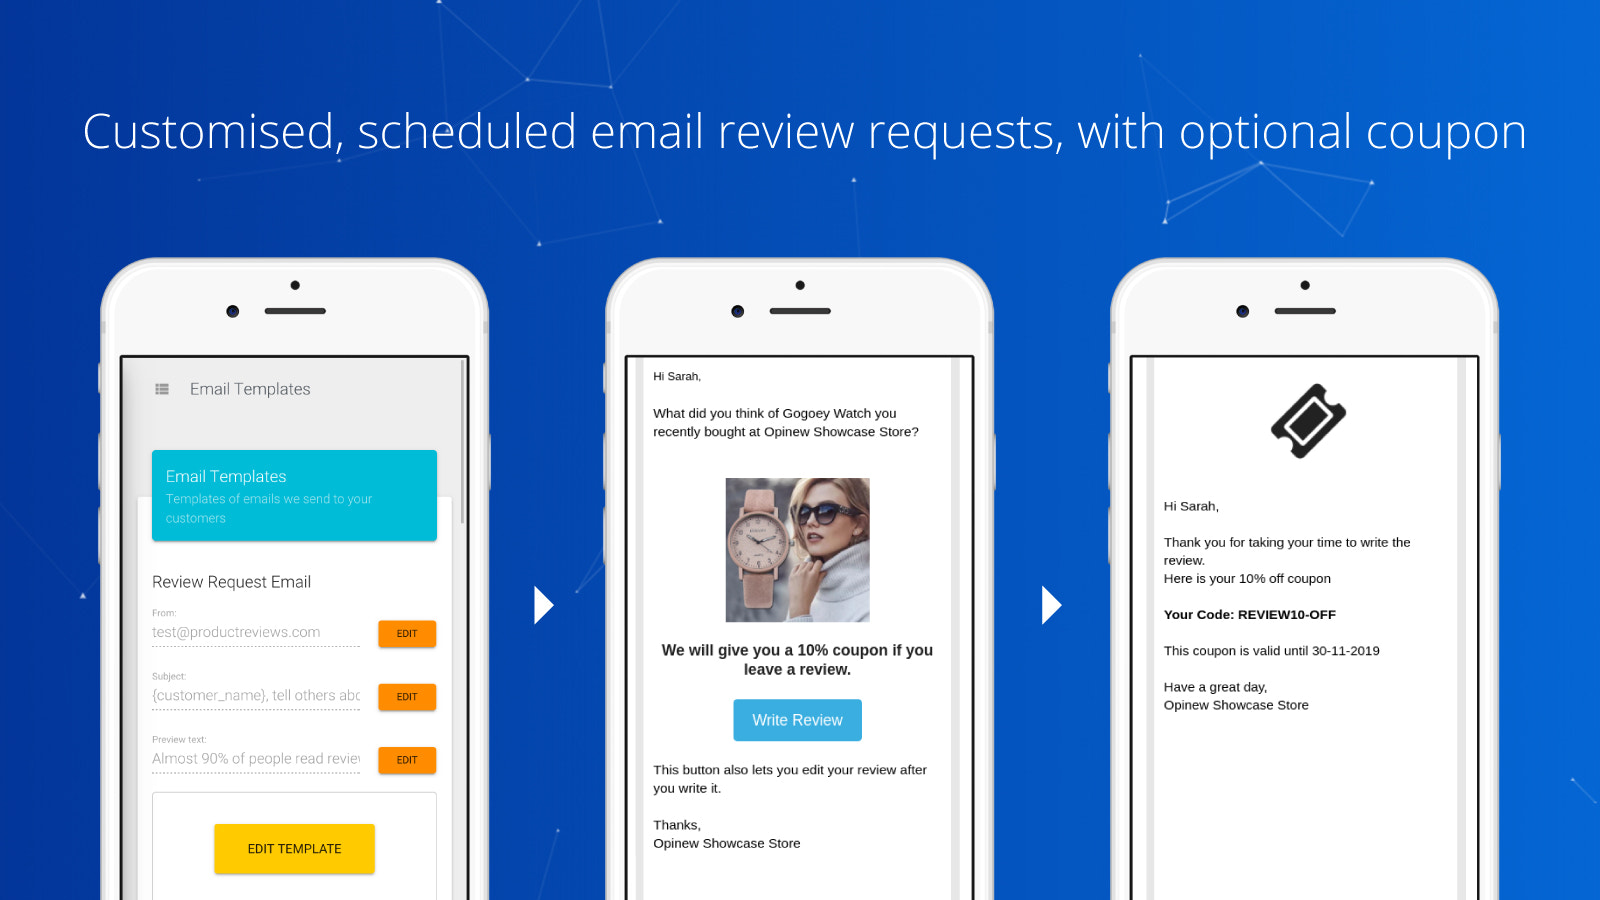 product reviews form. Review email, review sms, sales conversion